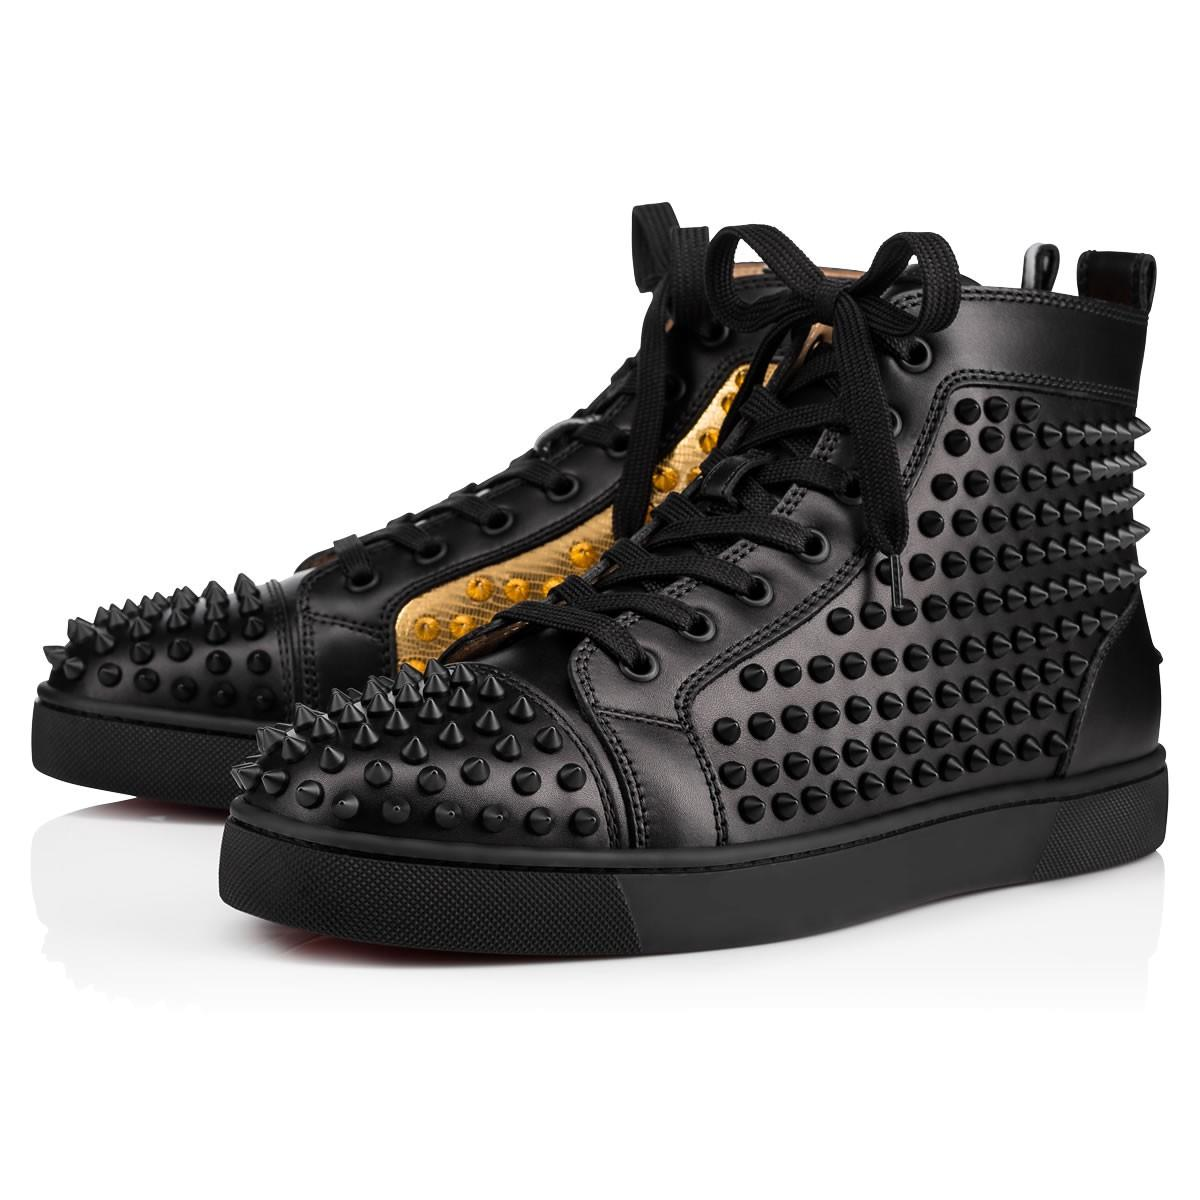 d61a0718e1a4 Christian Louboutin Yang Louis Leather High-Top Sneaker In Black Gold